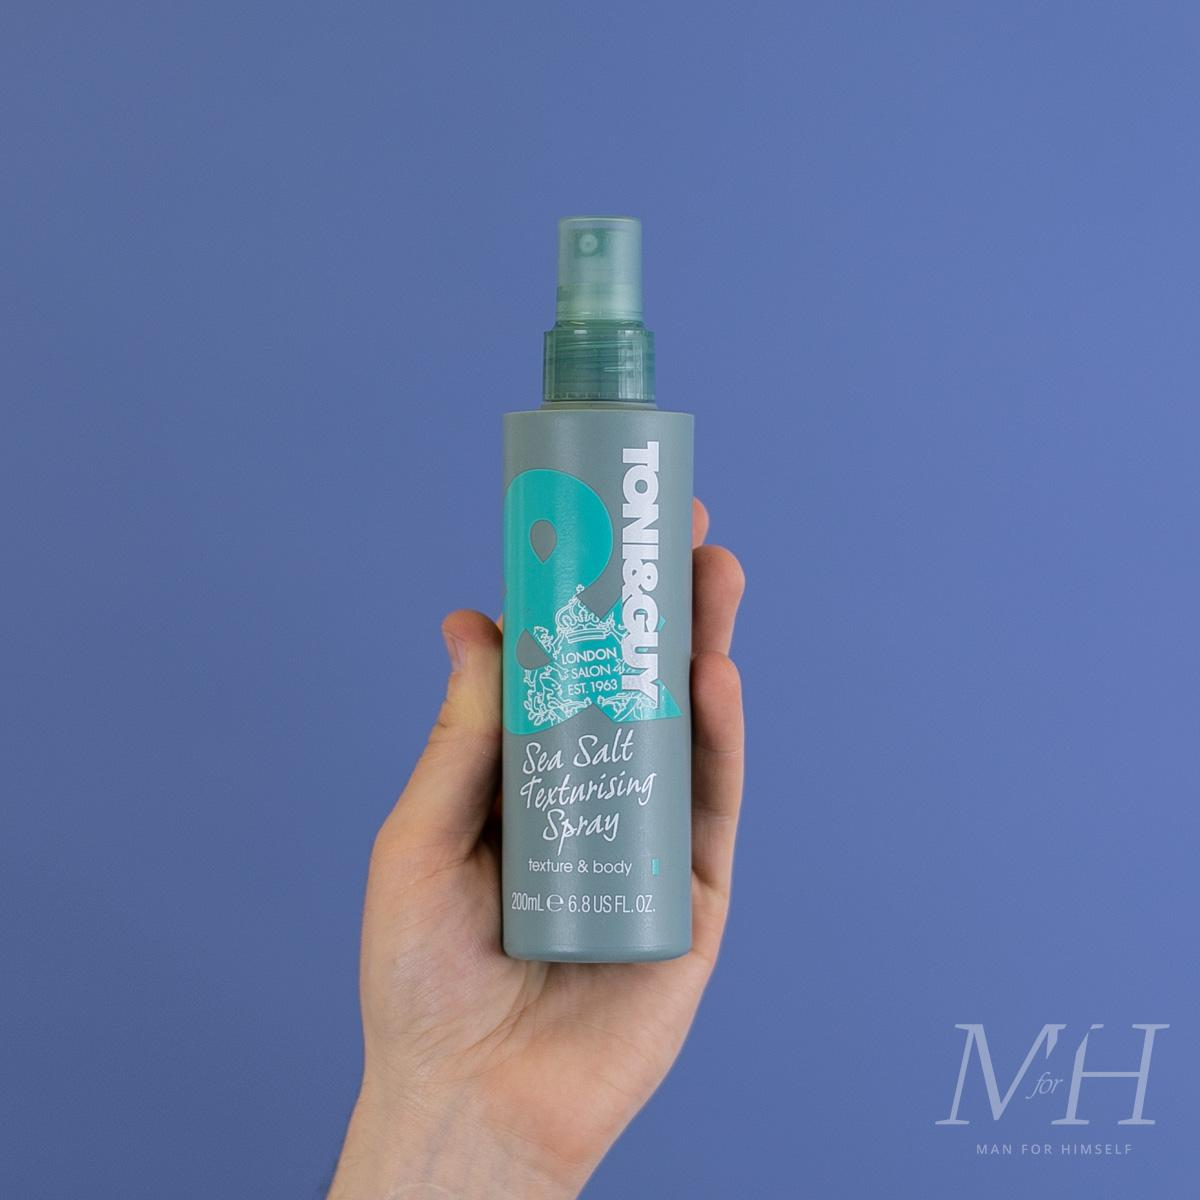 toni-and-guy-texturising-sea-salt-spray-product-review-man-for-himself